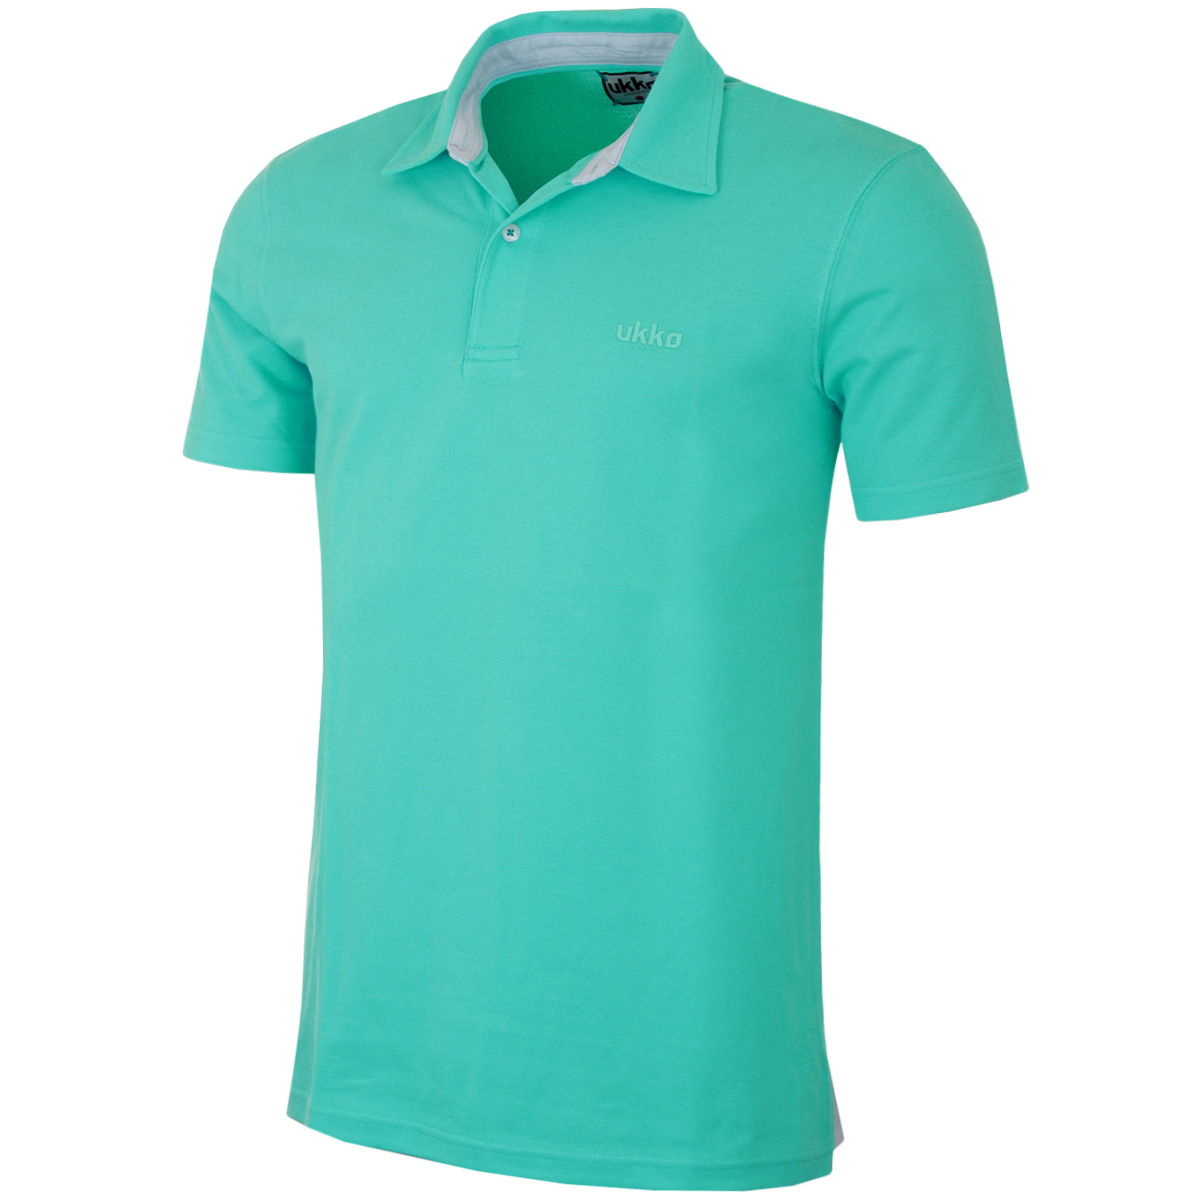 Ukko mens oxford cotton golf polo shirt classic fashion for Polo golf shirts for men